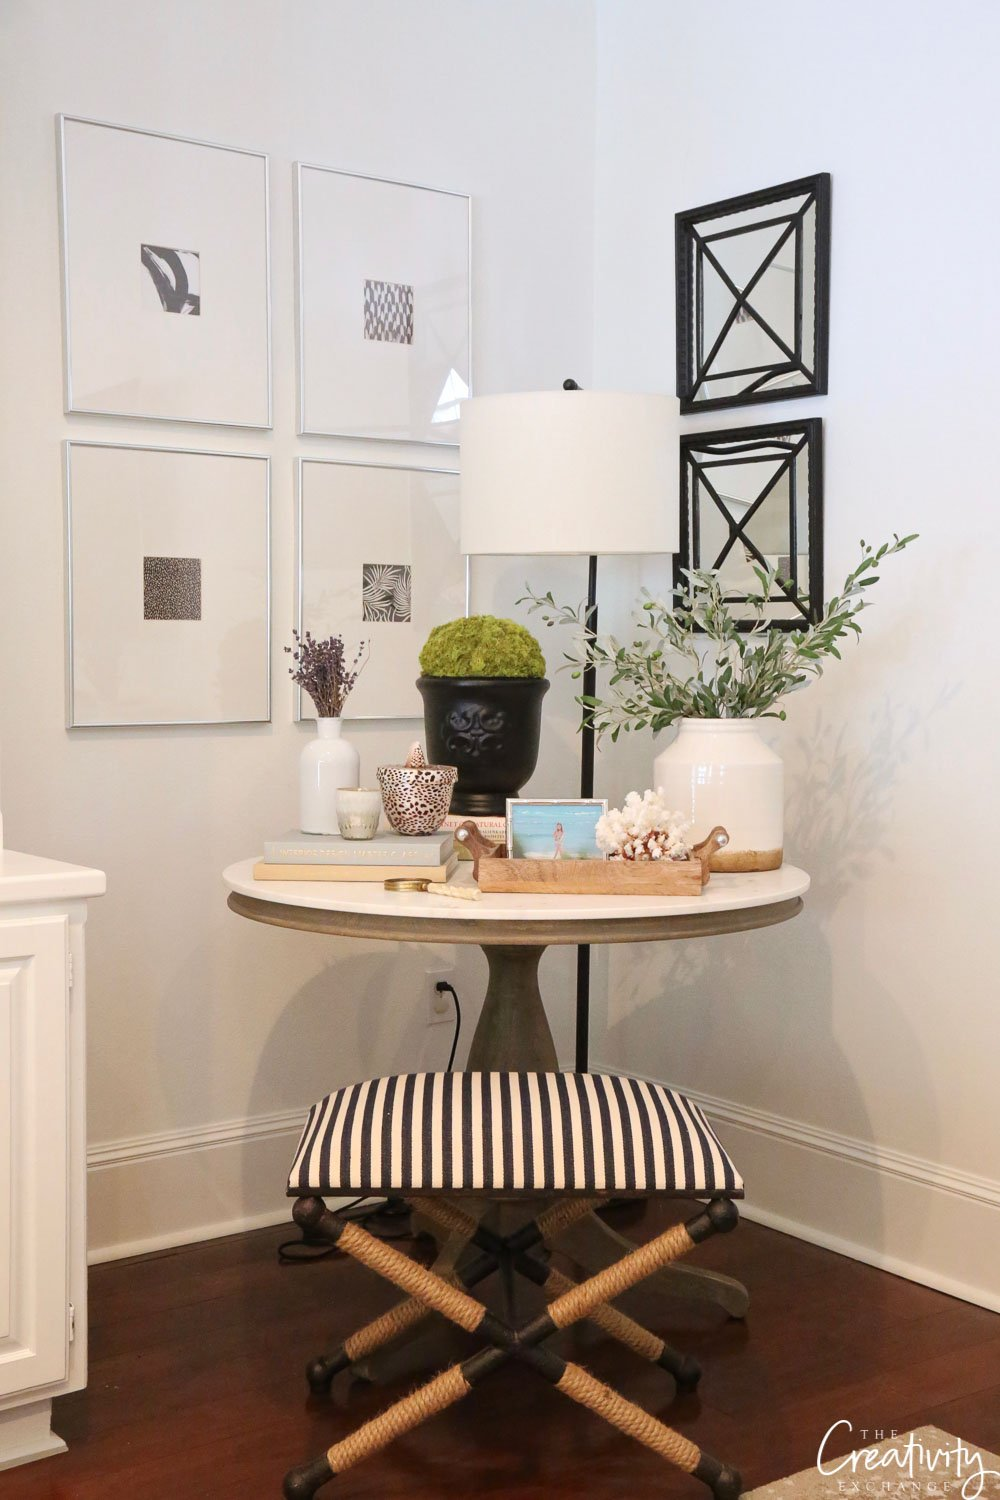 Wall Color is Benjamin Moore Decorator's White